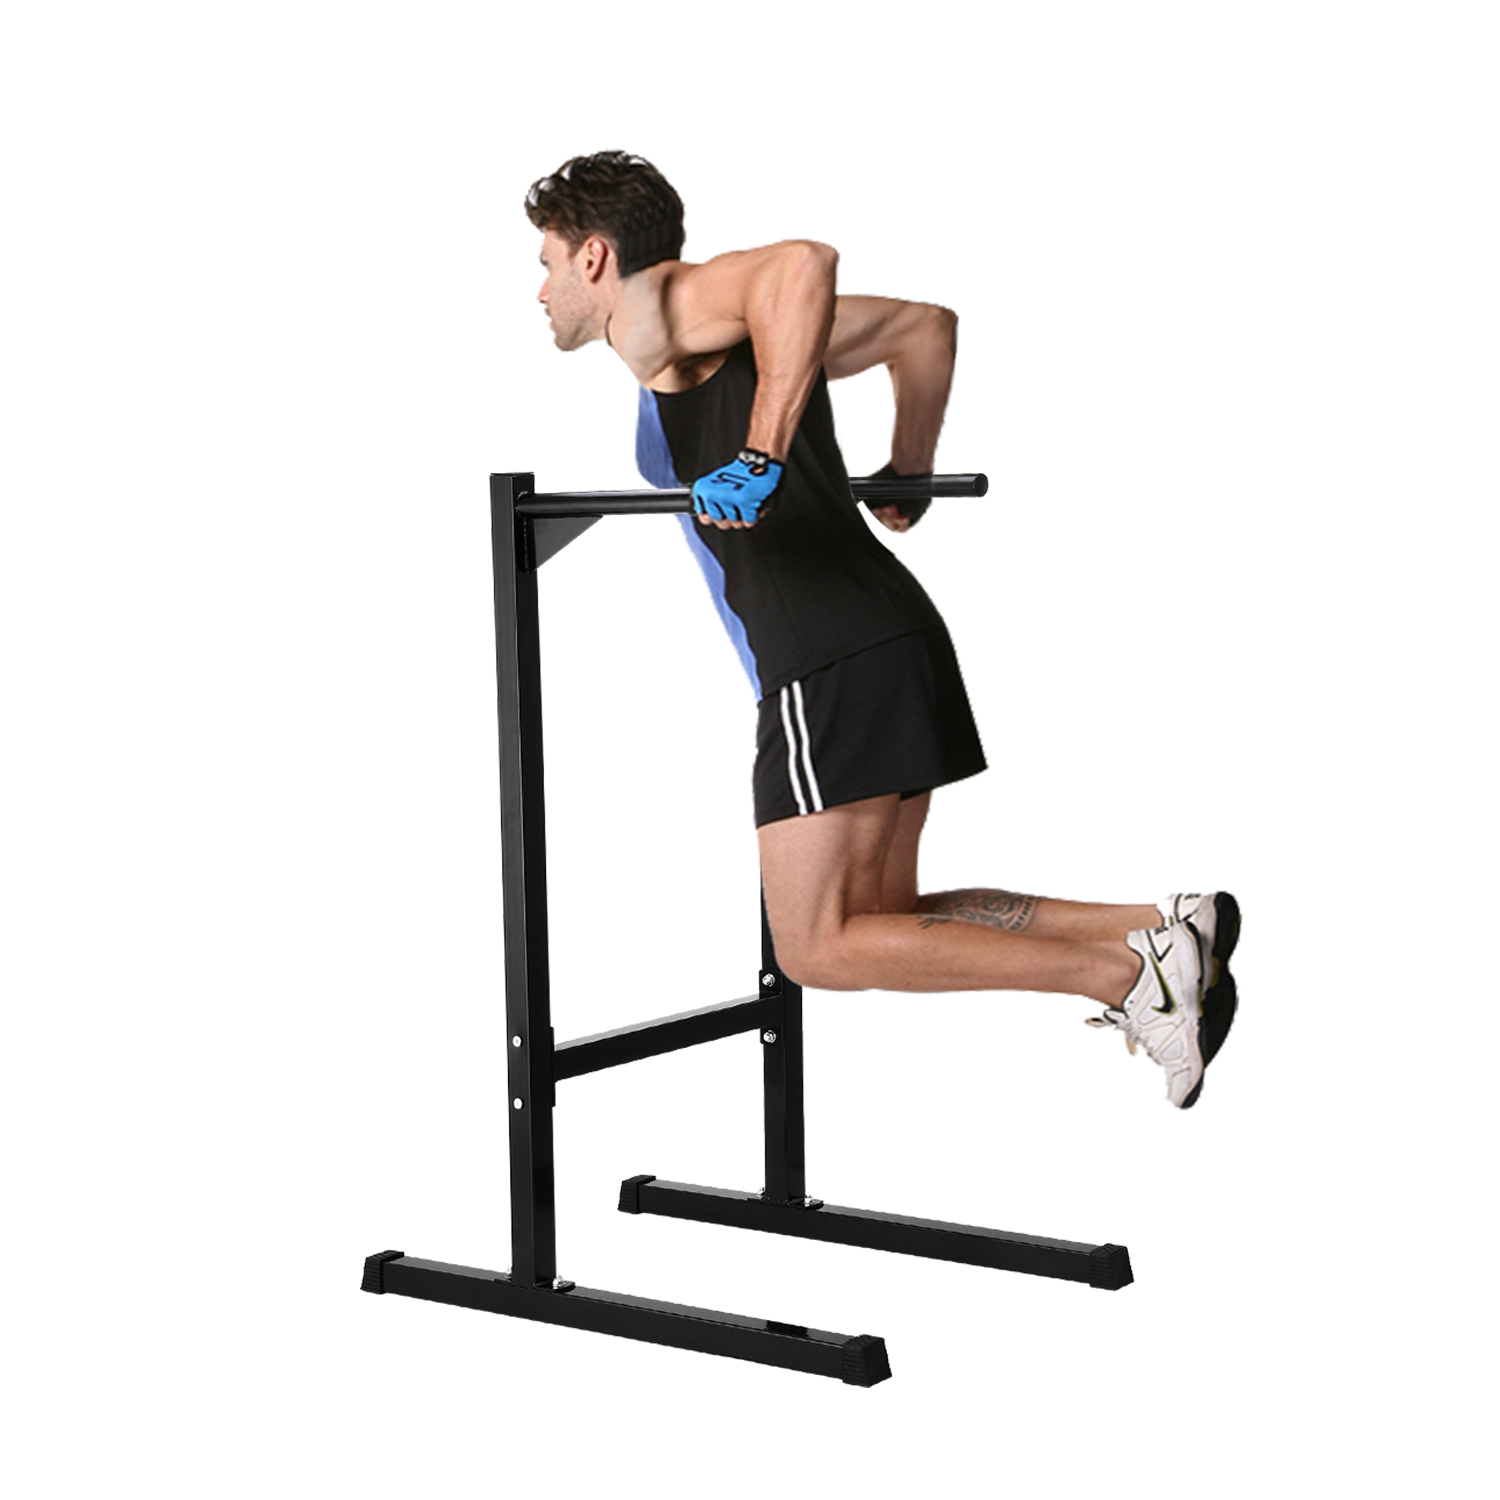 Mllieroo Heavy Duty Dipping station Dip Stand Pull Push Up Bar Fitness Exercise Home Workout Gym